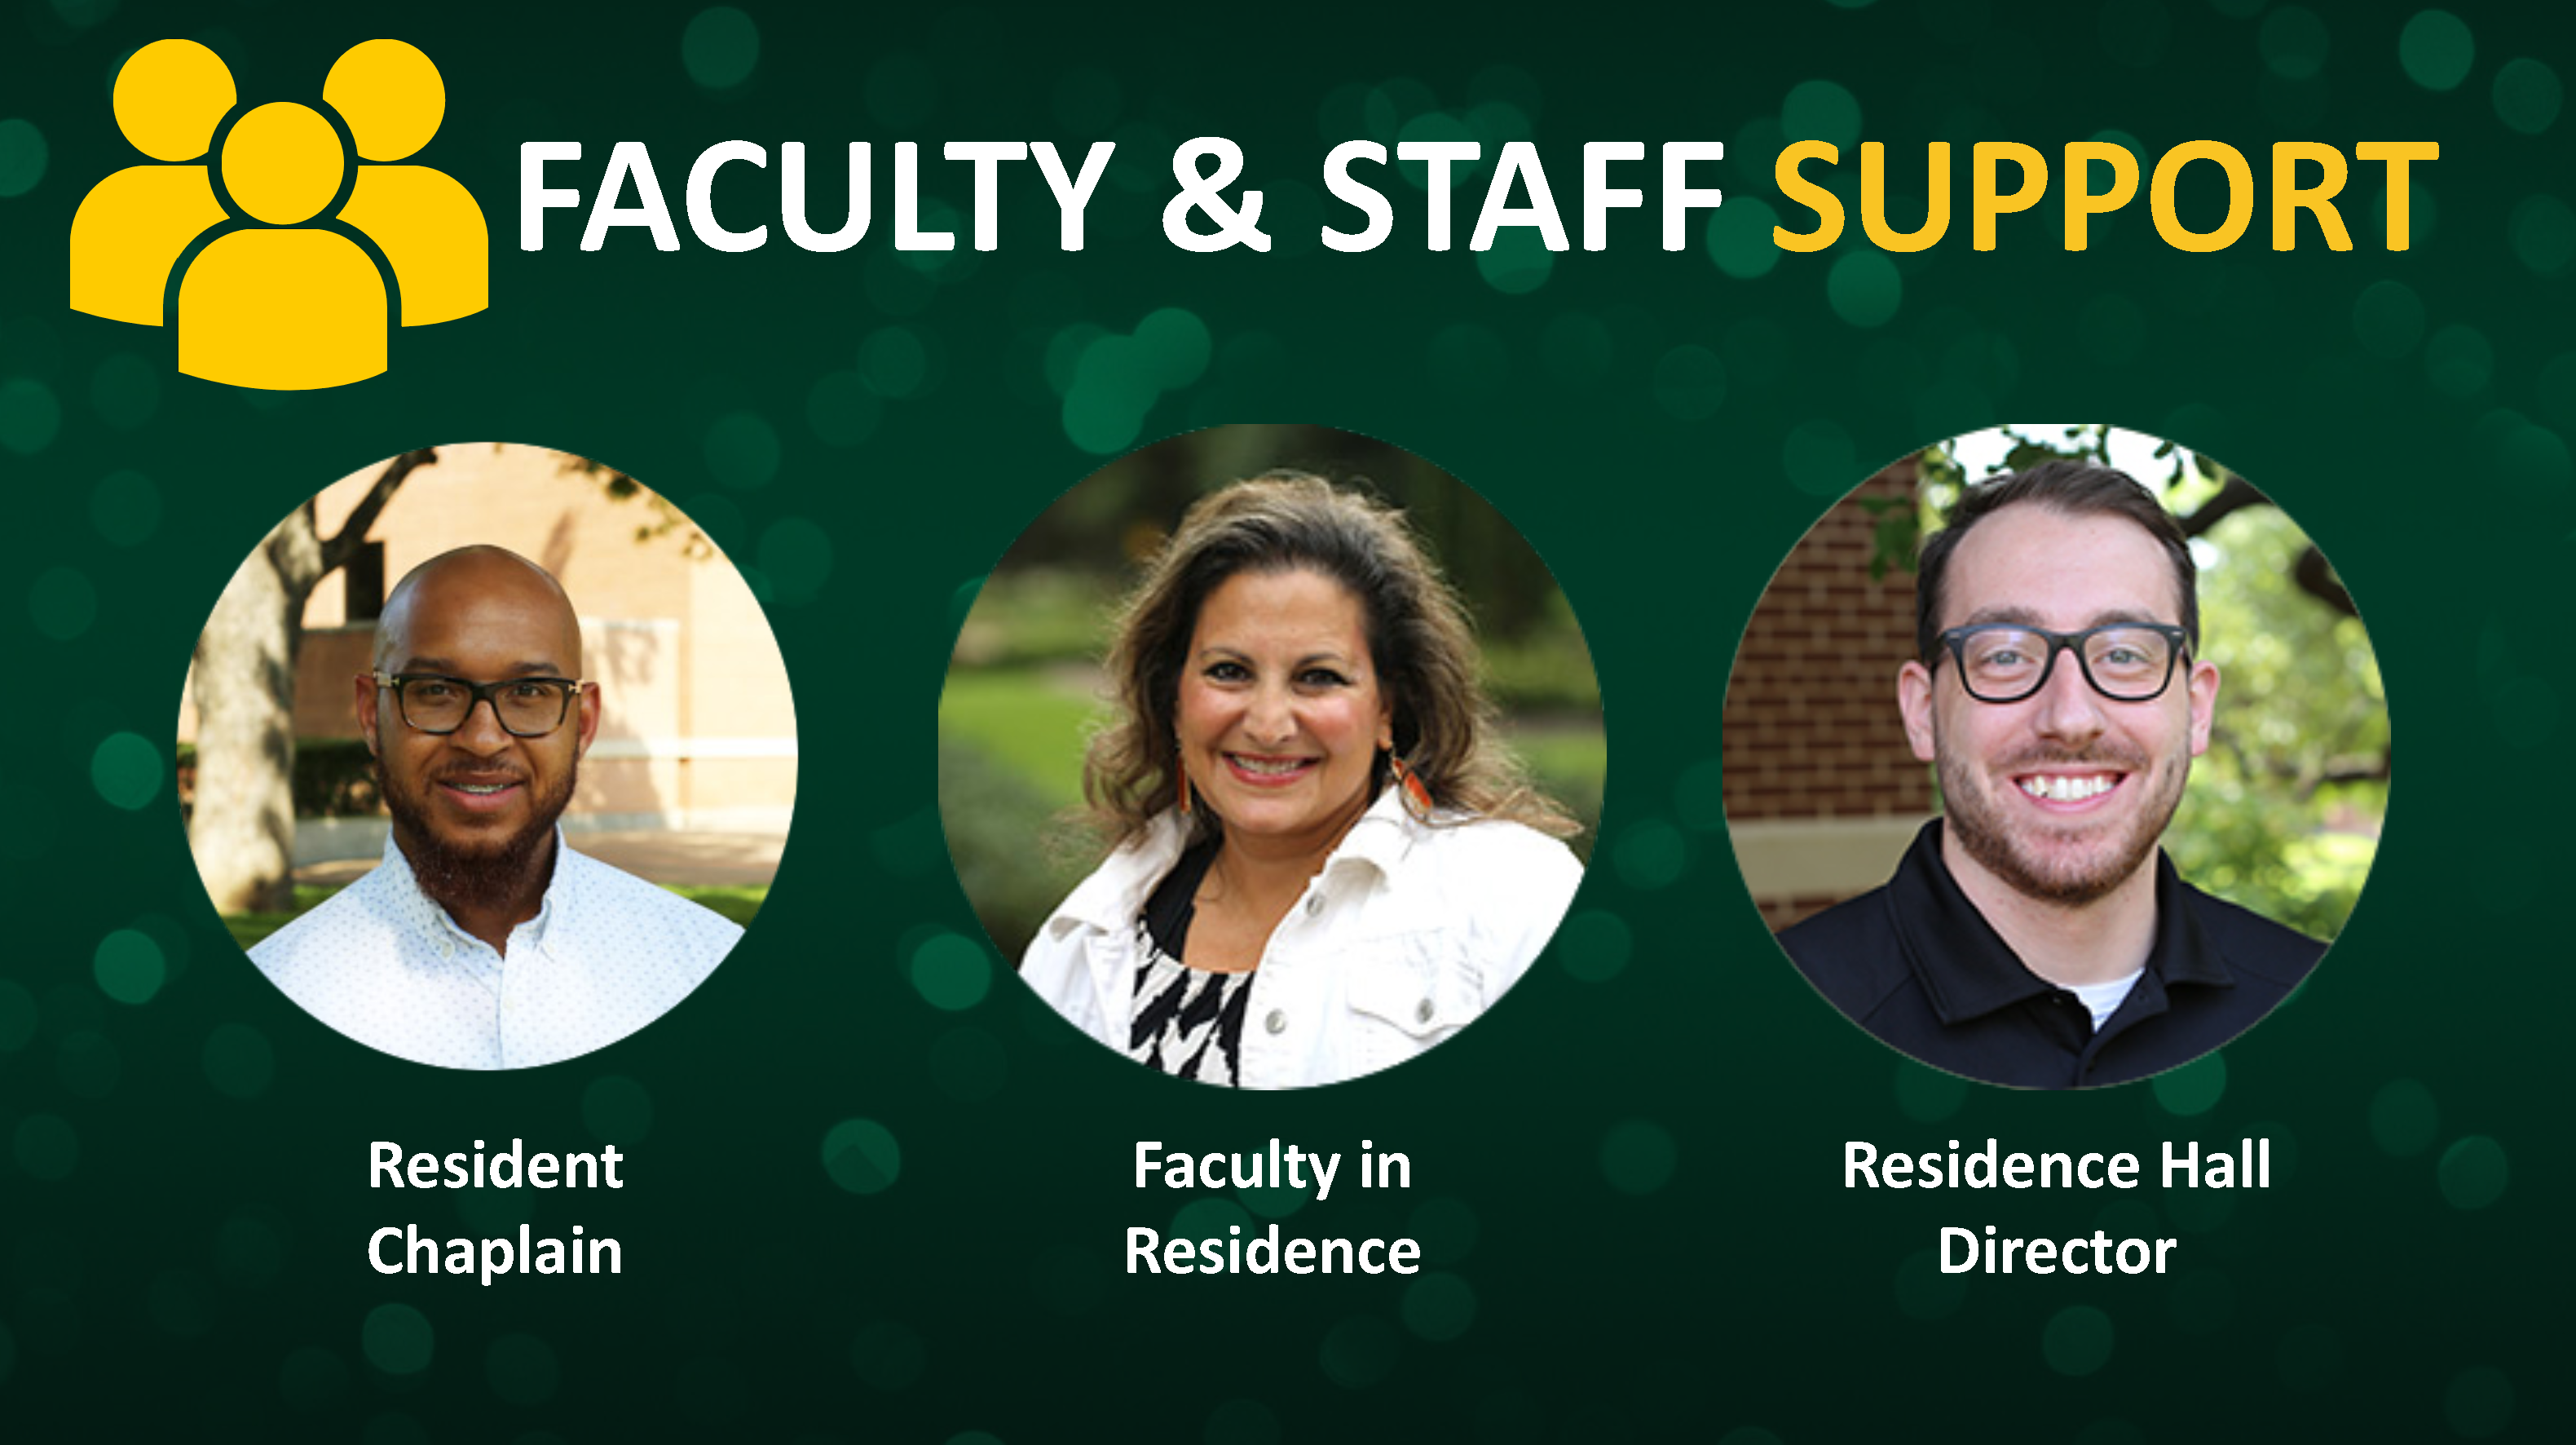 Faculty/Staff Support